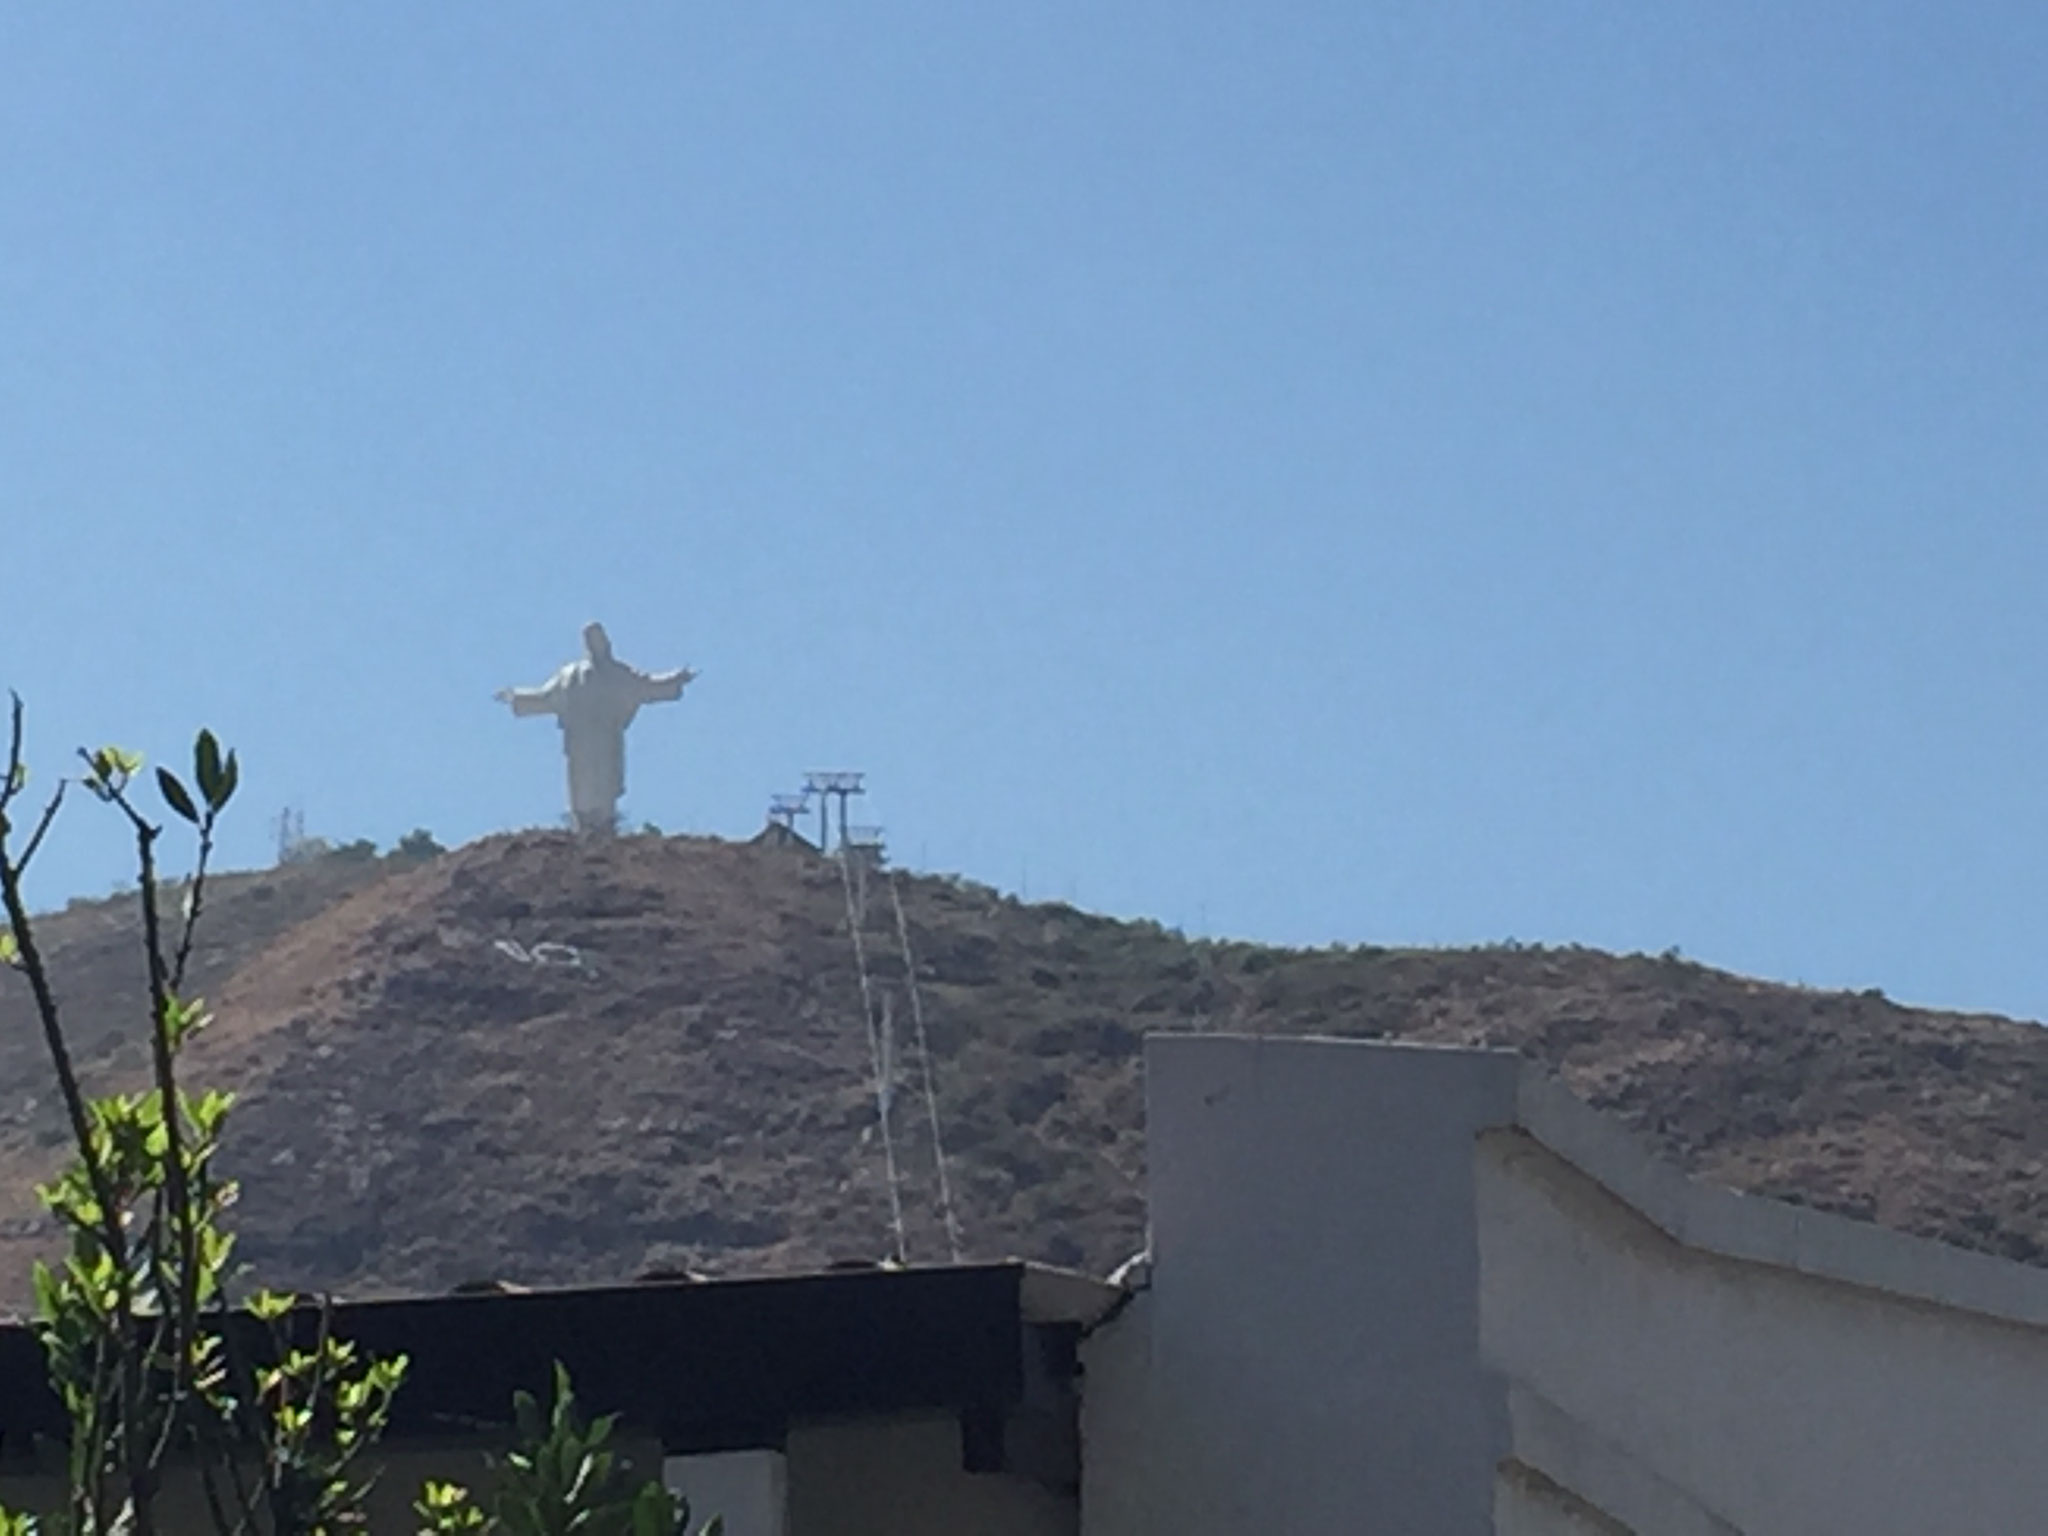 Statue in Cochabamba